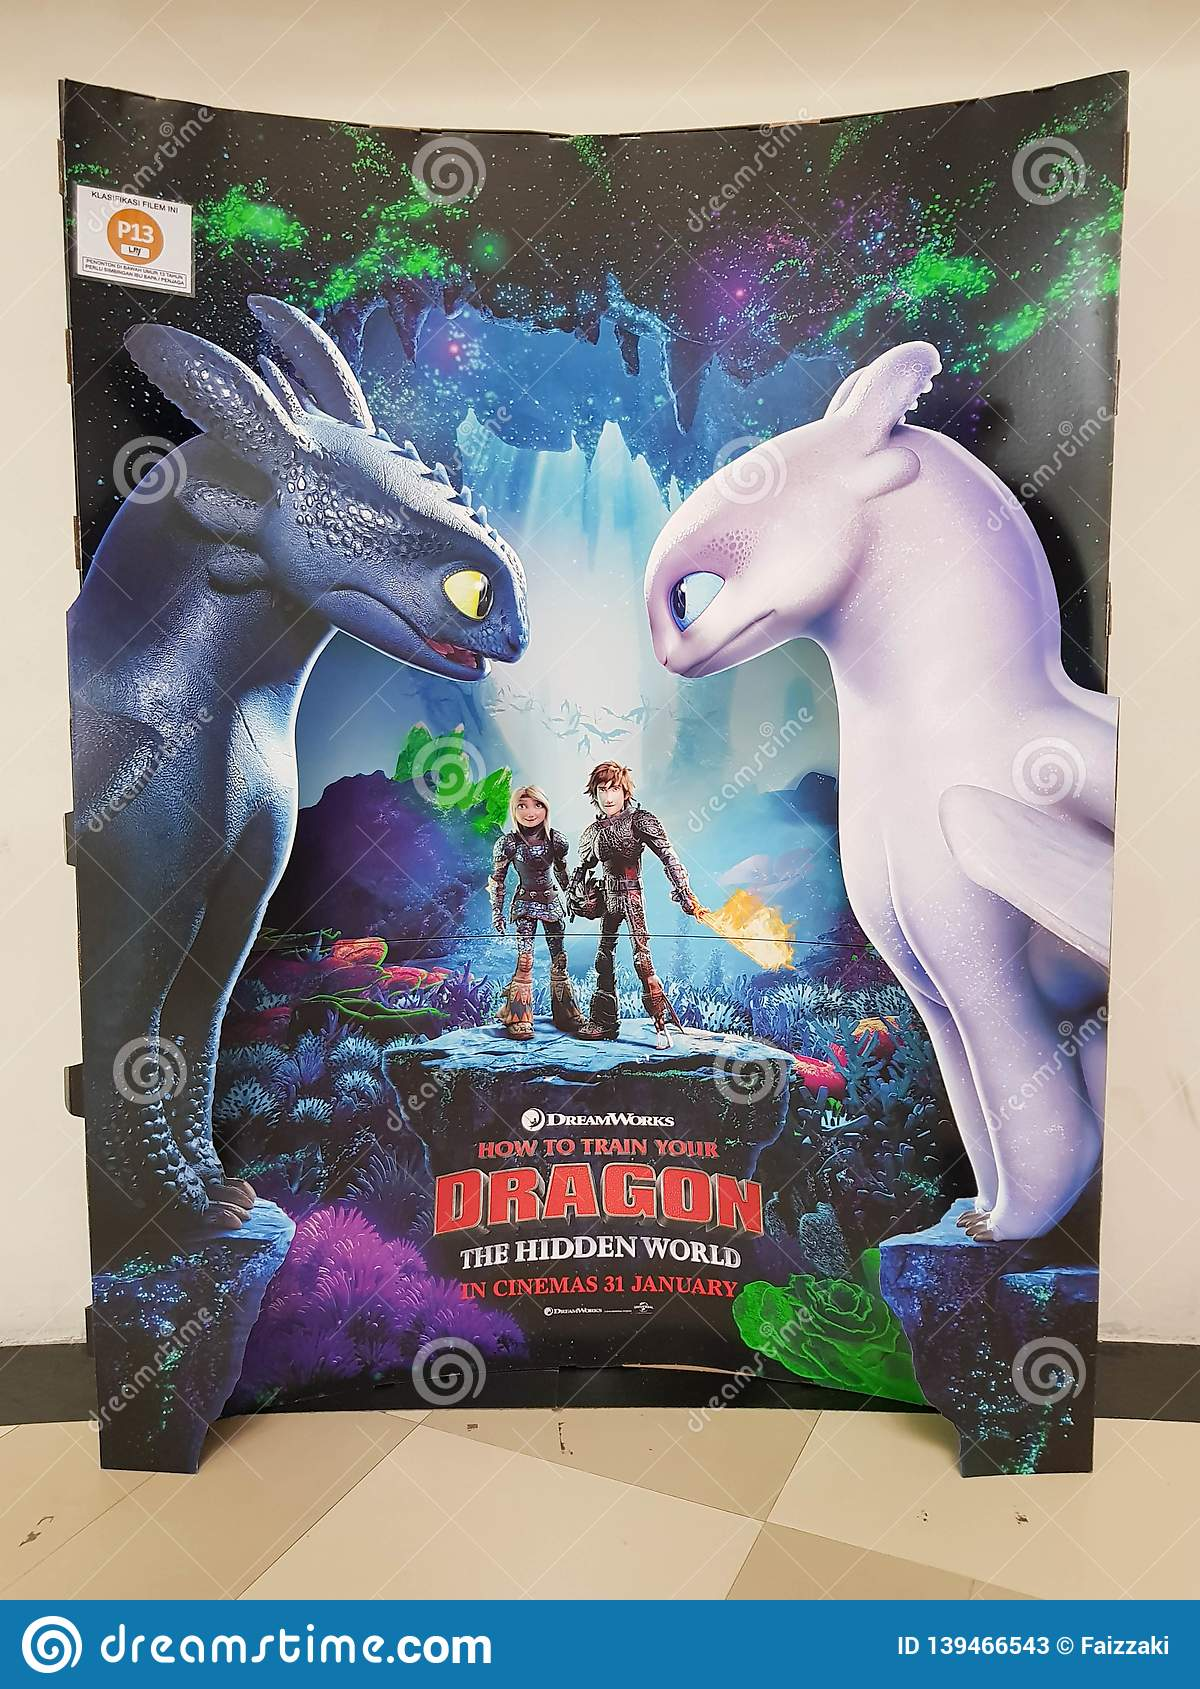 Beautiful Standee Of A Movie How To Train Your Dragon Hidden World Display At Cinema Theater Editorial Stock Photo Image Of Celebration Cartoon 139466543